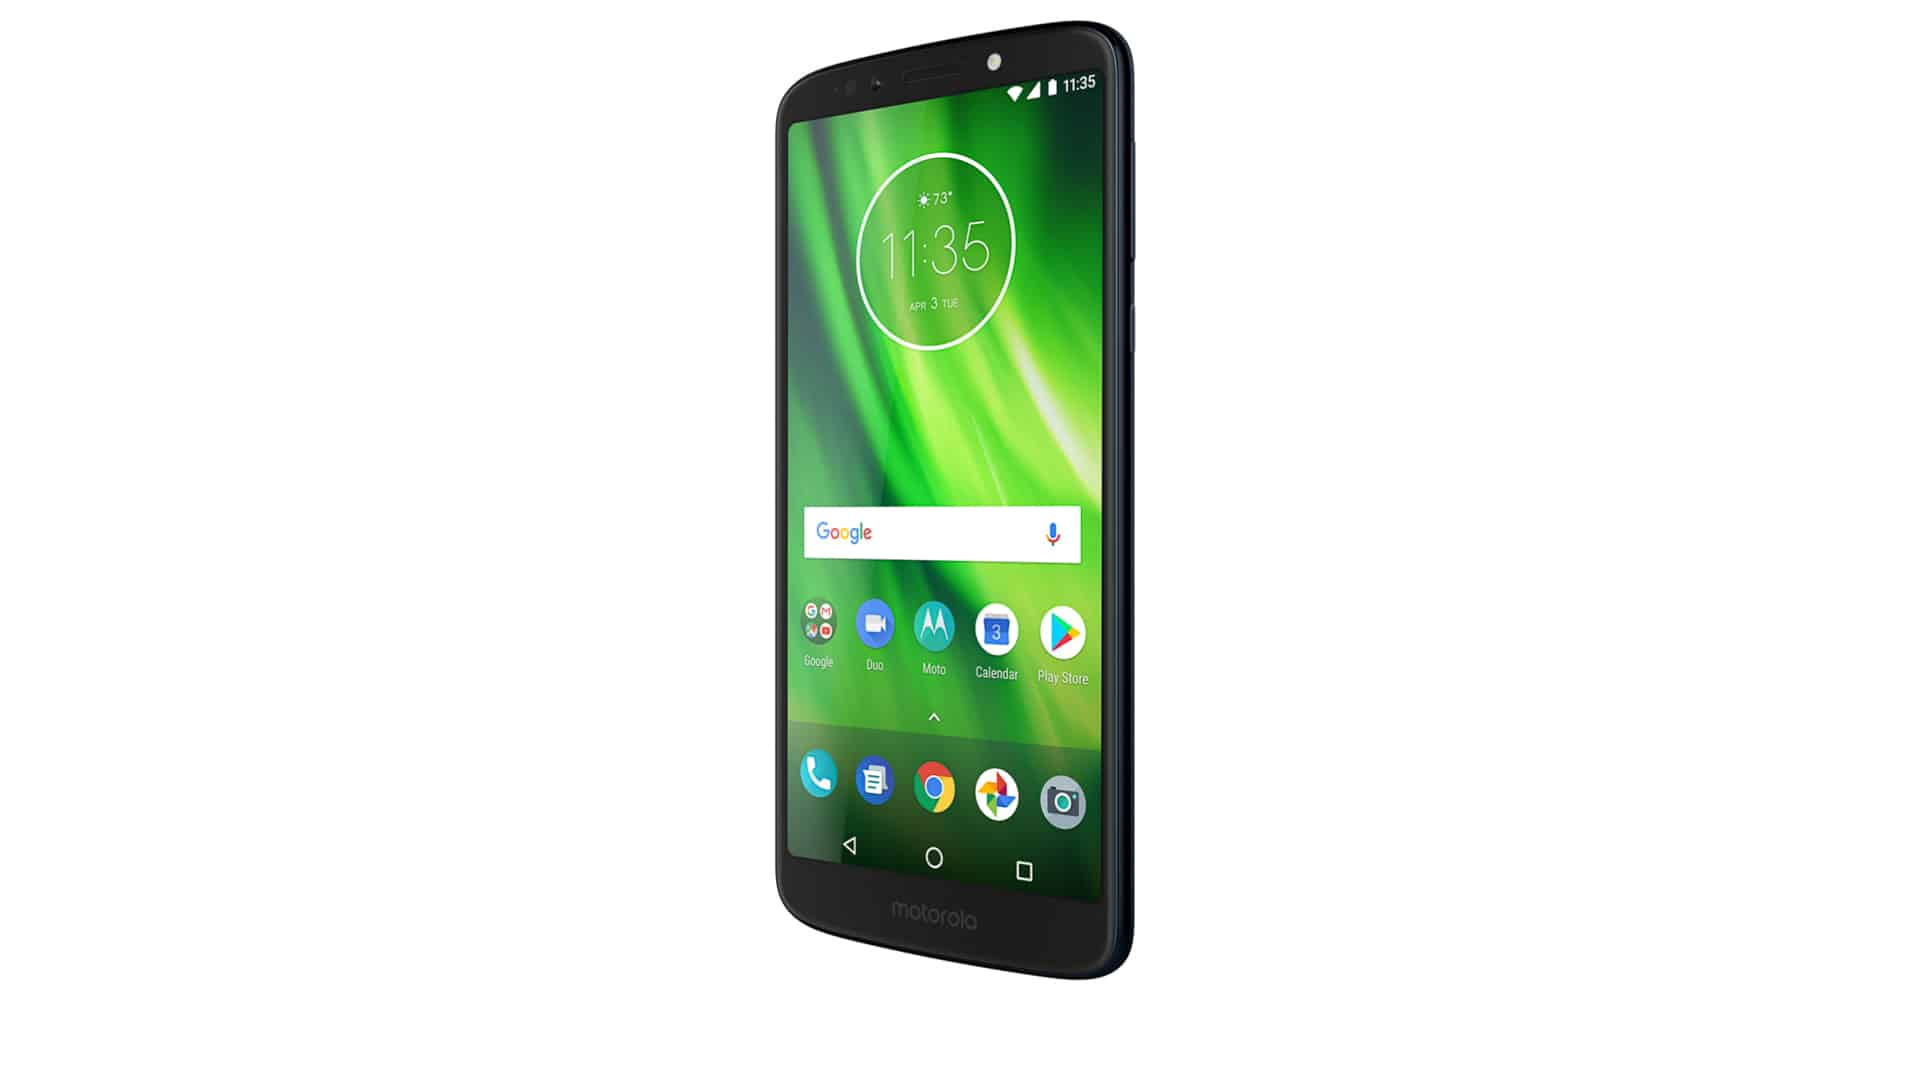 Moto G6 Play Official Press Render 12 of 16